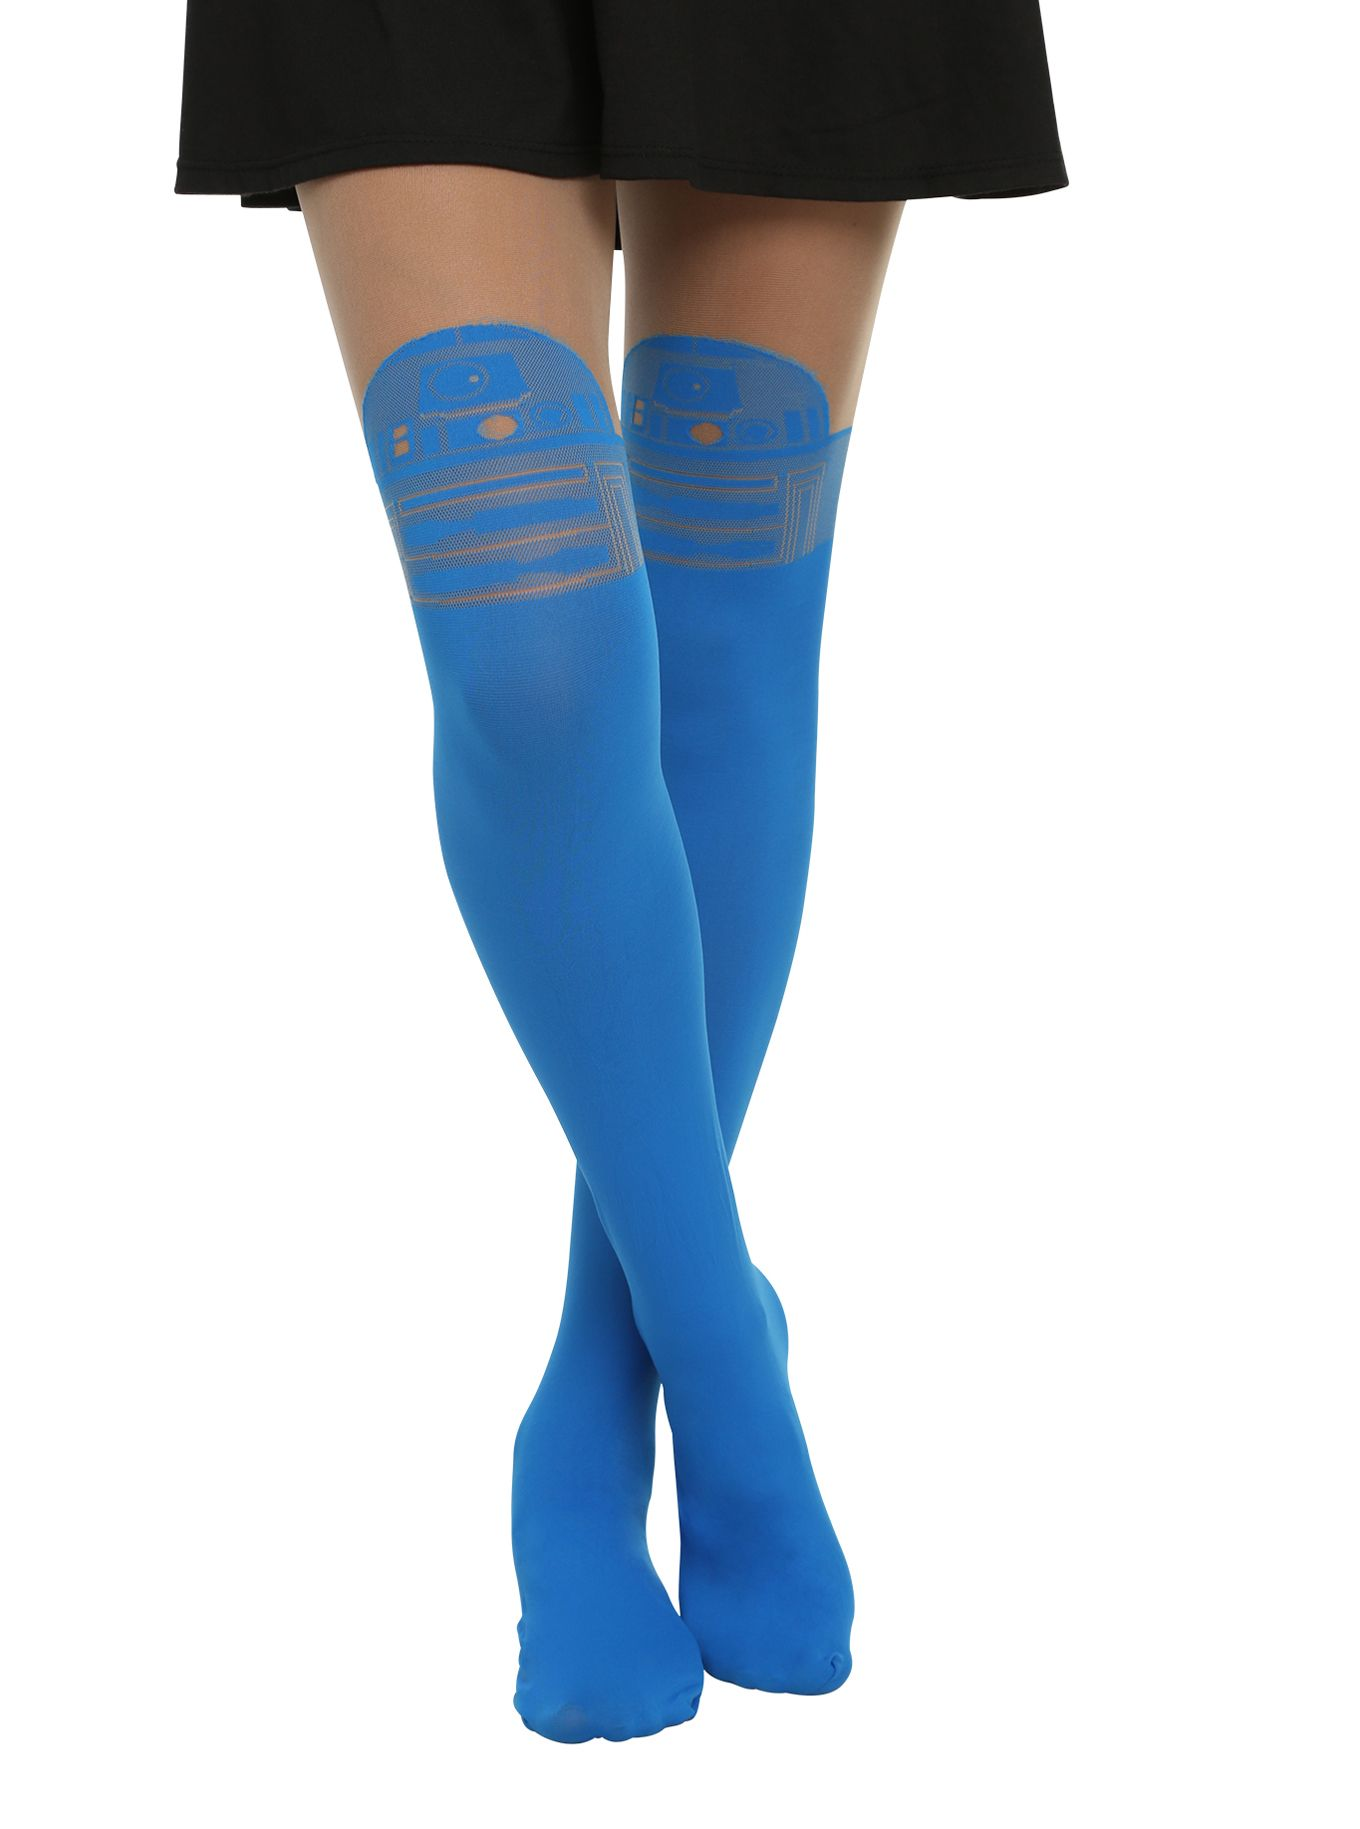 2707af71847cc Star Wars R2-D2 Faux Thigh High Tights | My Style: Leggings, Tights ...